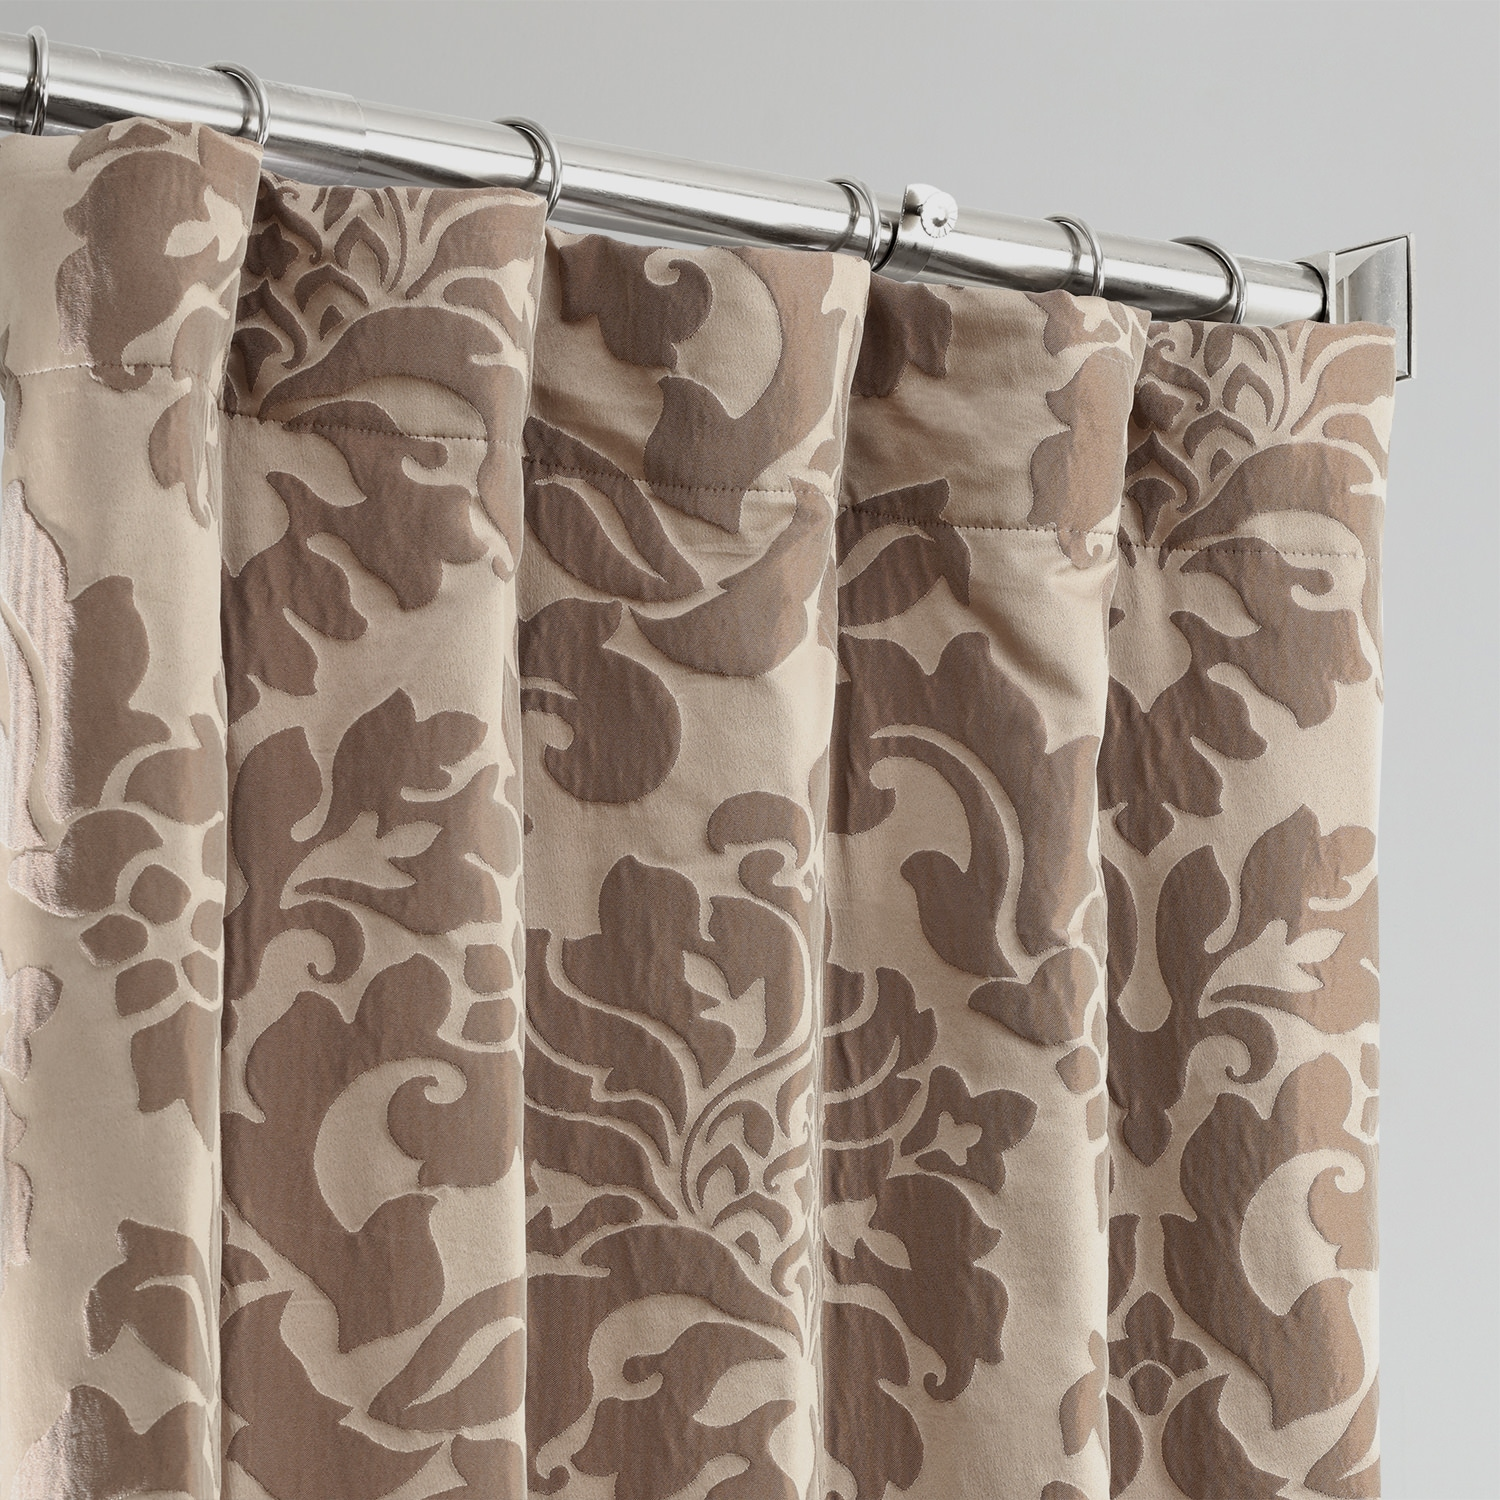 Astoria Taupe & Mushroom Designer Damask Curtain